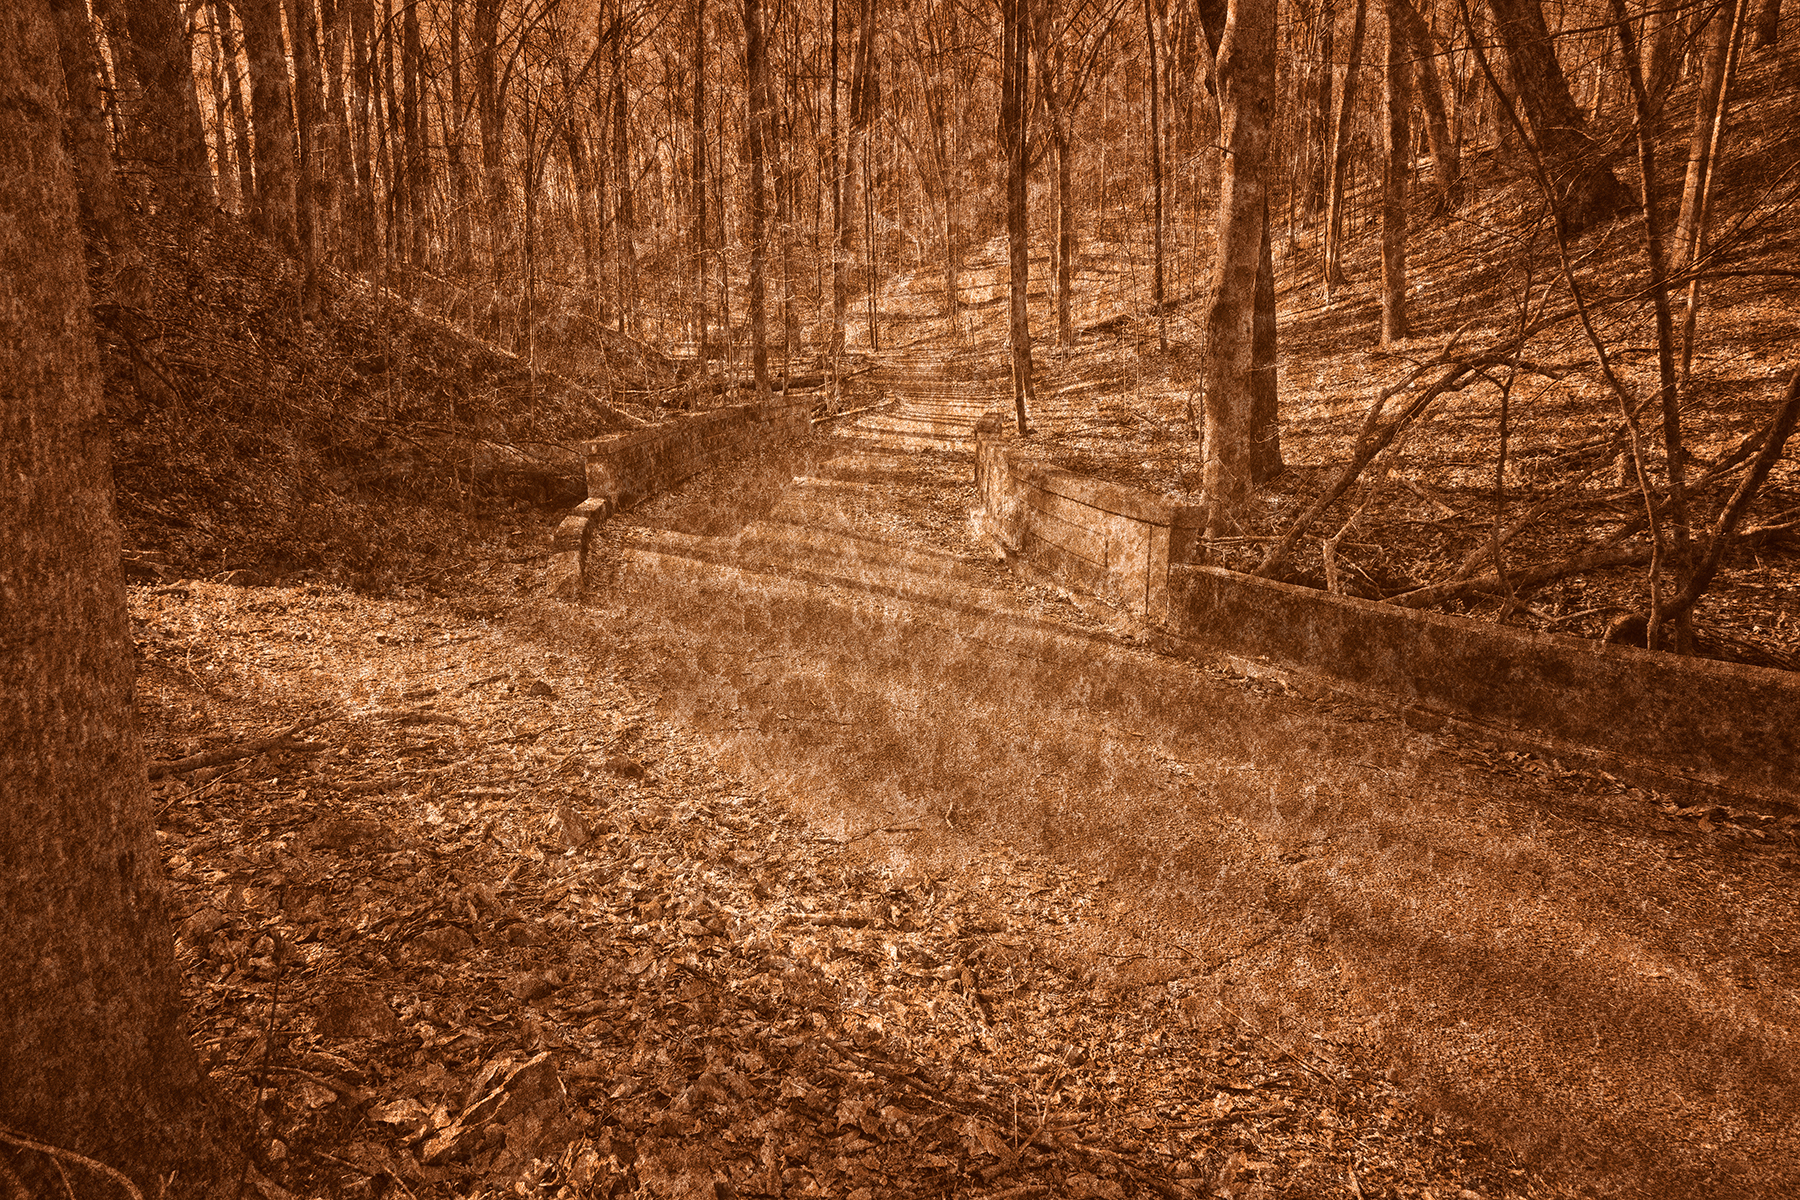 Wander Rust Forest Trail, Abstract, Passage, Rusty, Rustic, HQ Photo